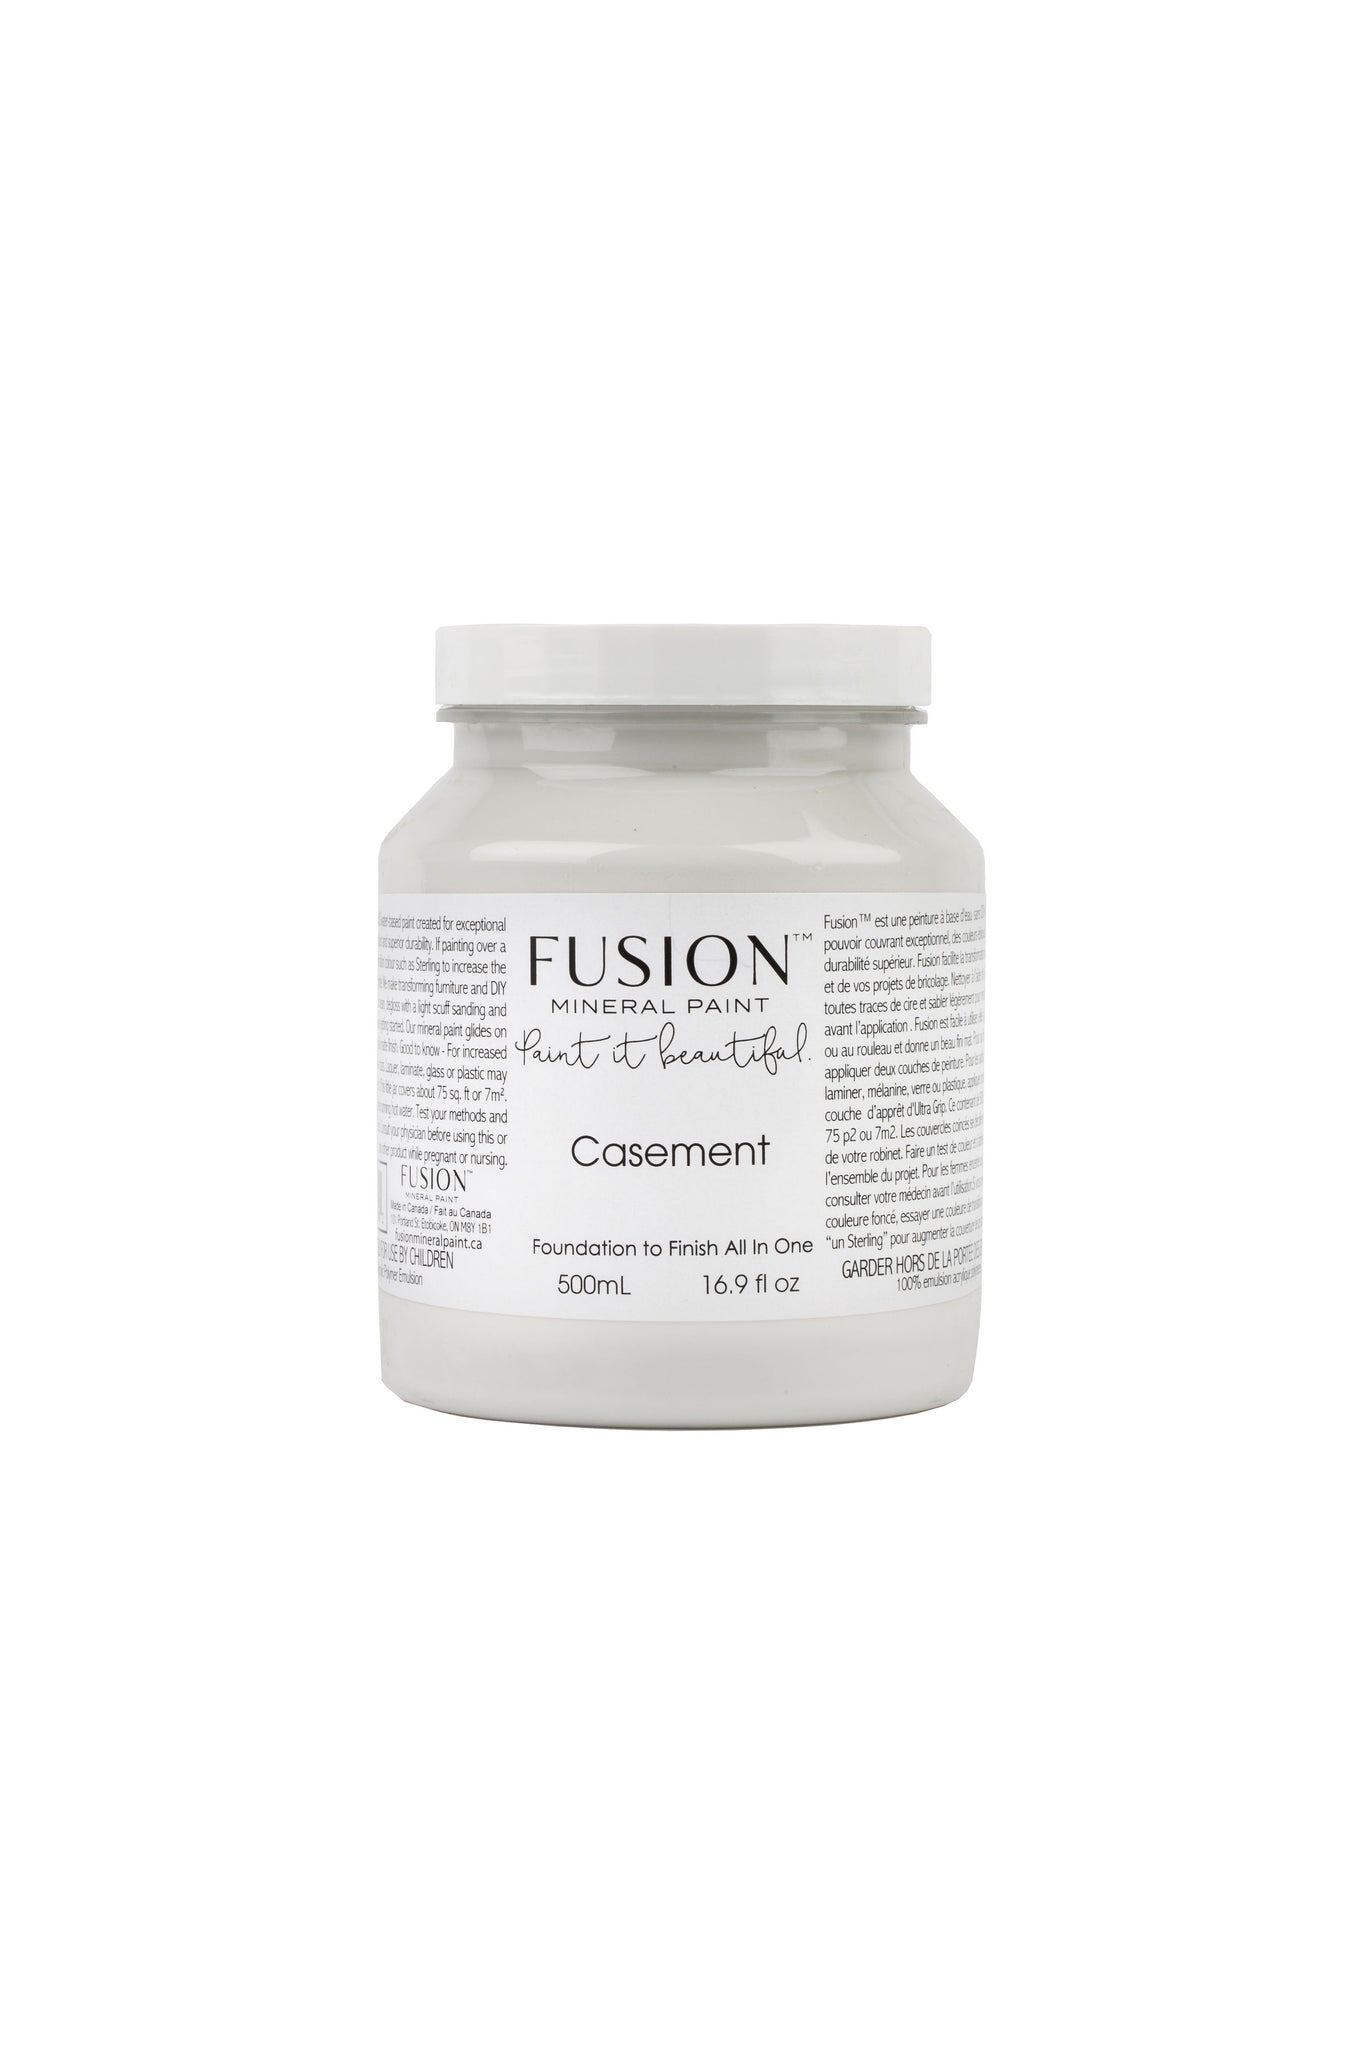 A pint (500 ml) container of Casement Fusion Mineral Paint.